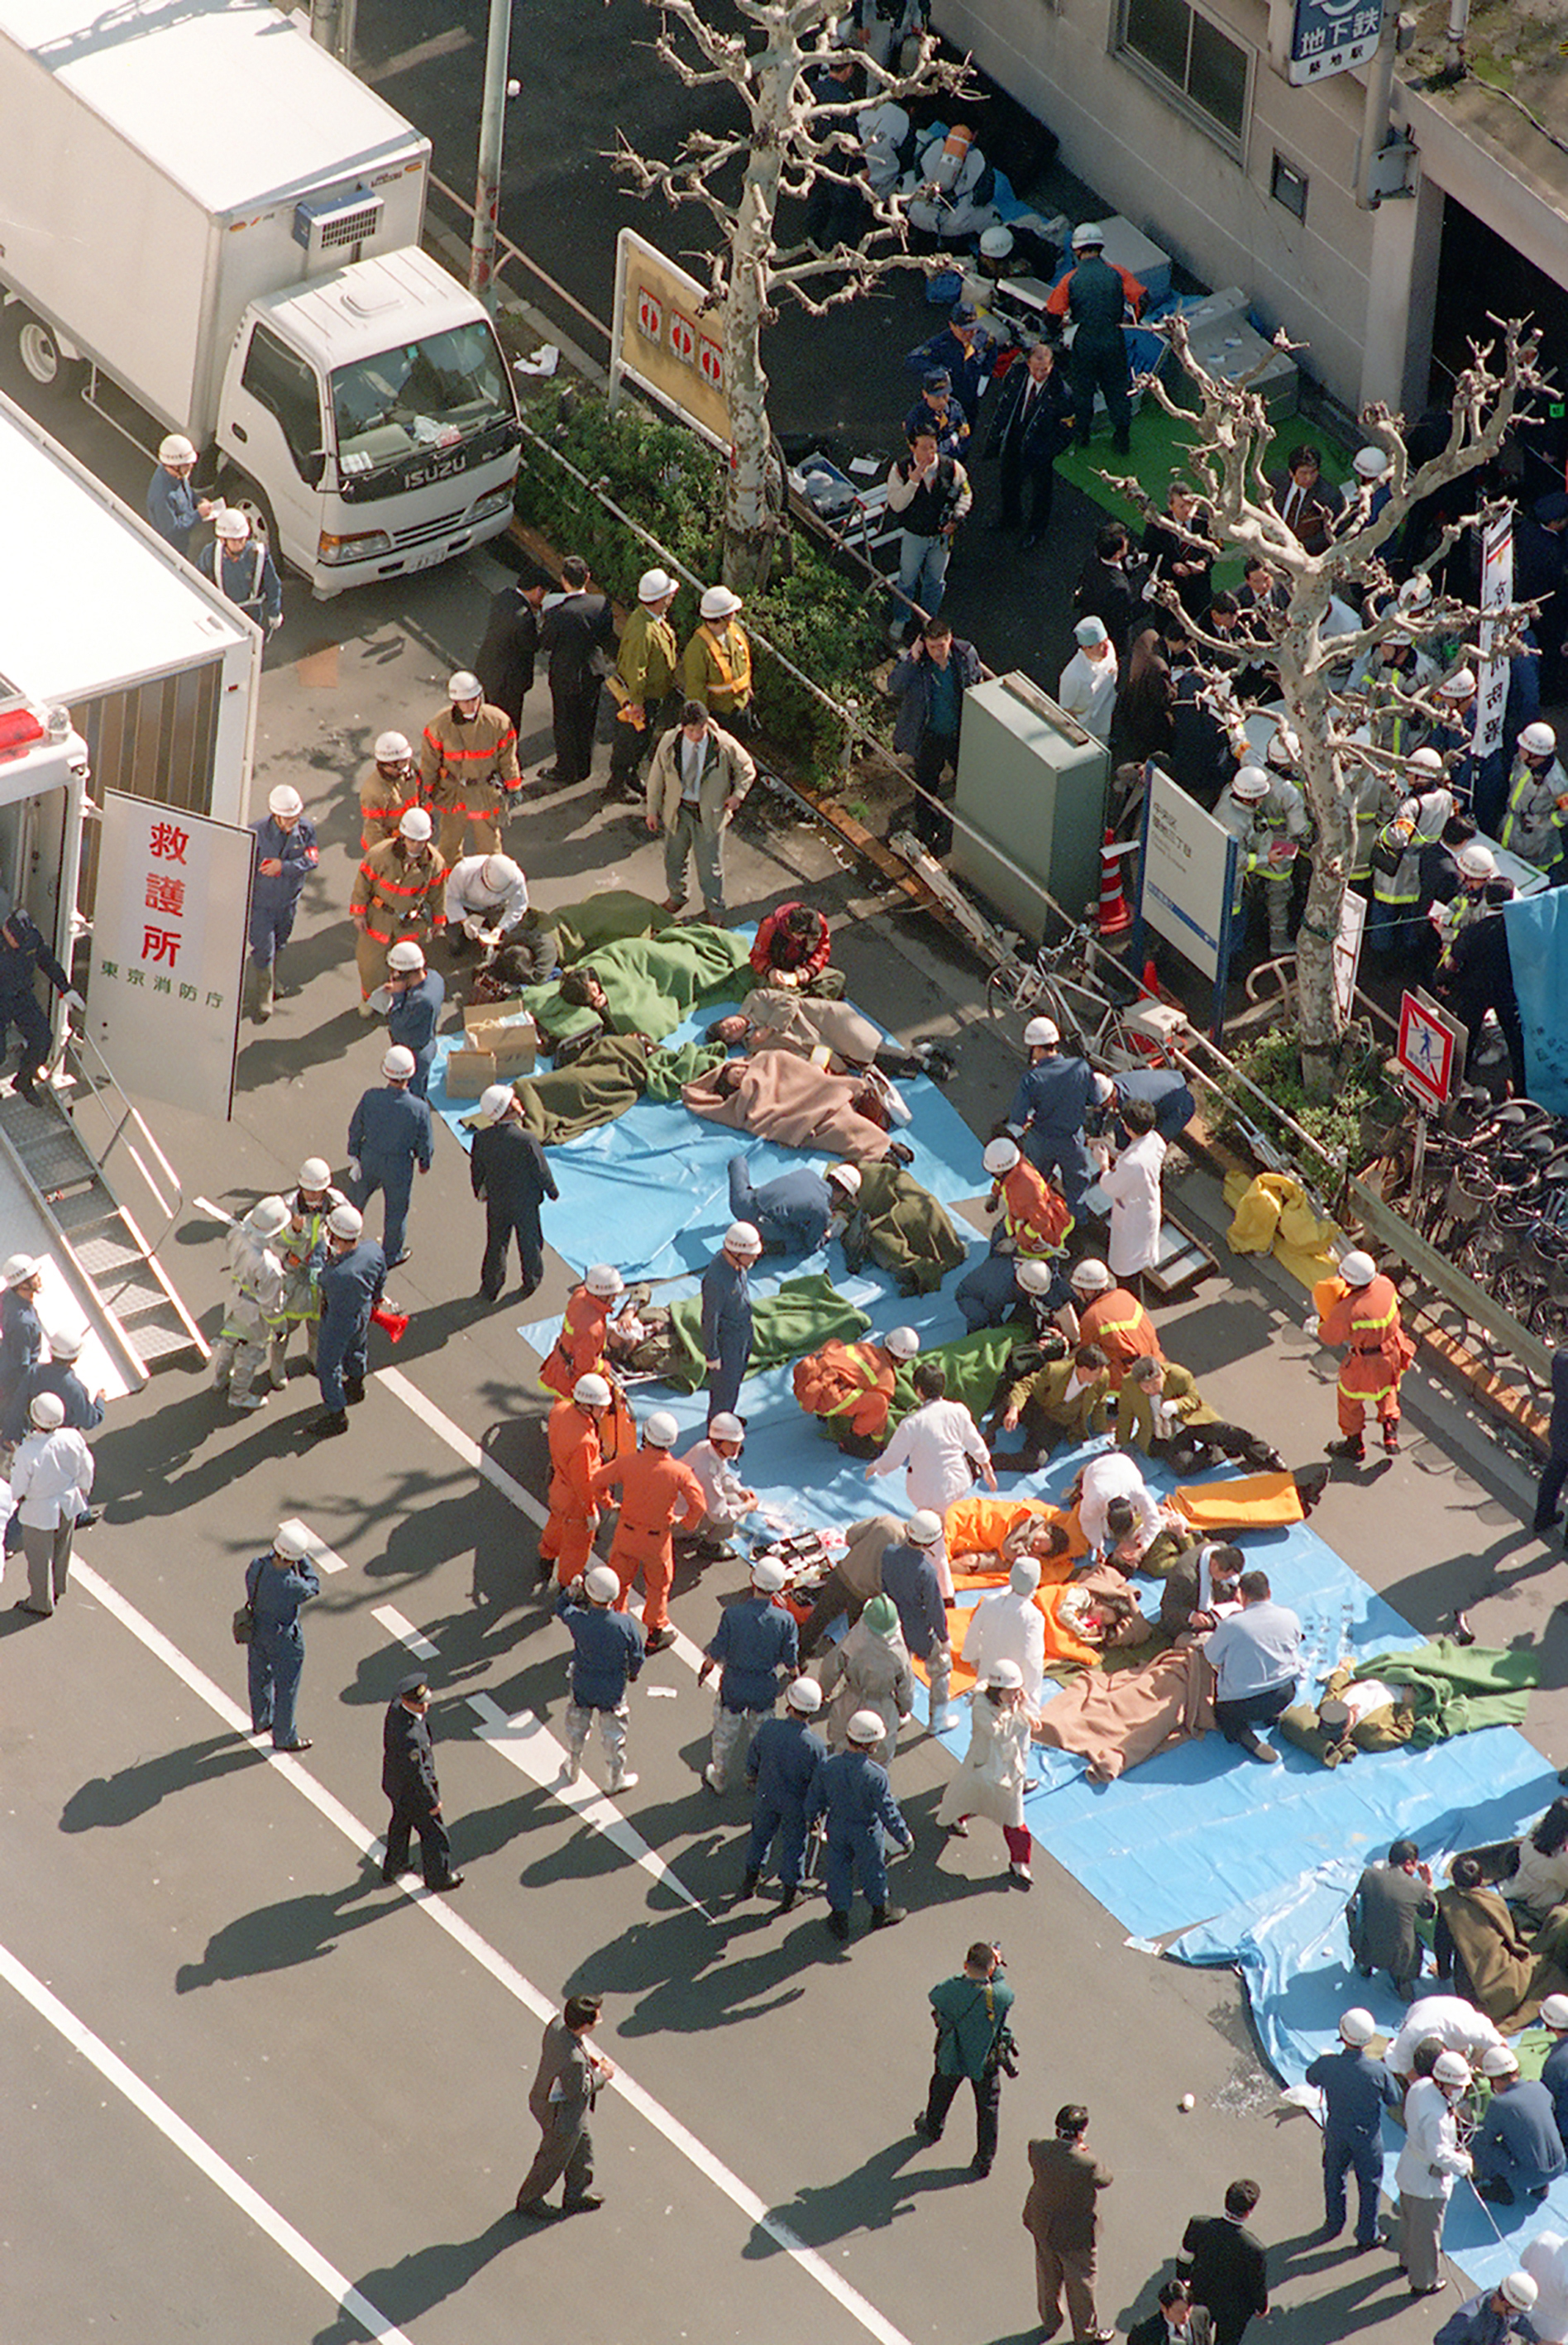 a focus on aum shinrikyos cult founder shoko asahara Aum shinrikyo (japanese オウム真理教) is a japanese doomsday cult founded by shoko asahara in 1984 it carried out the deadly tokyo subway sarin.